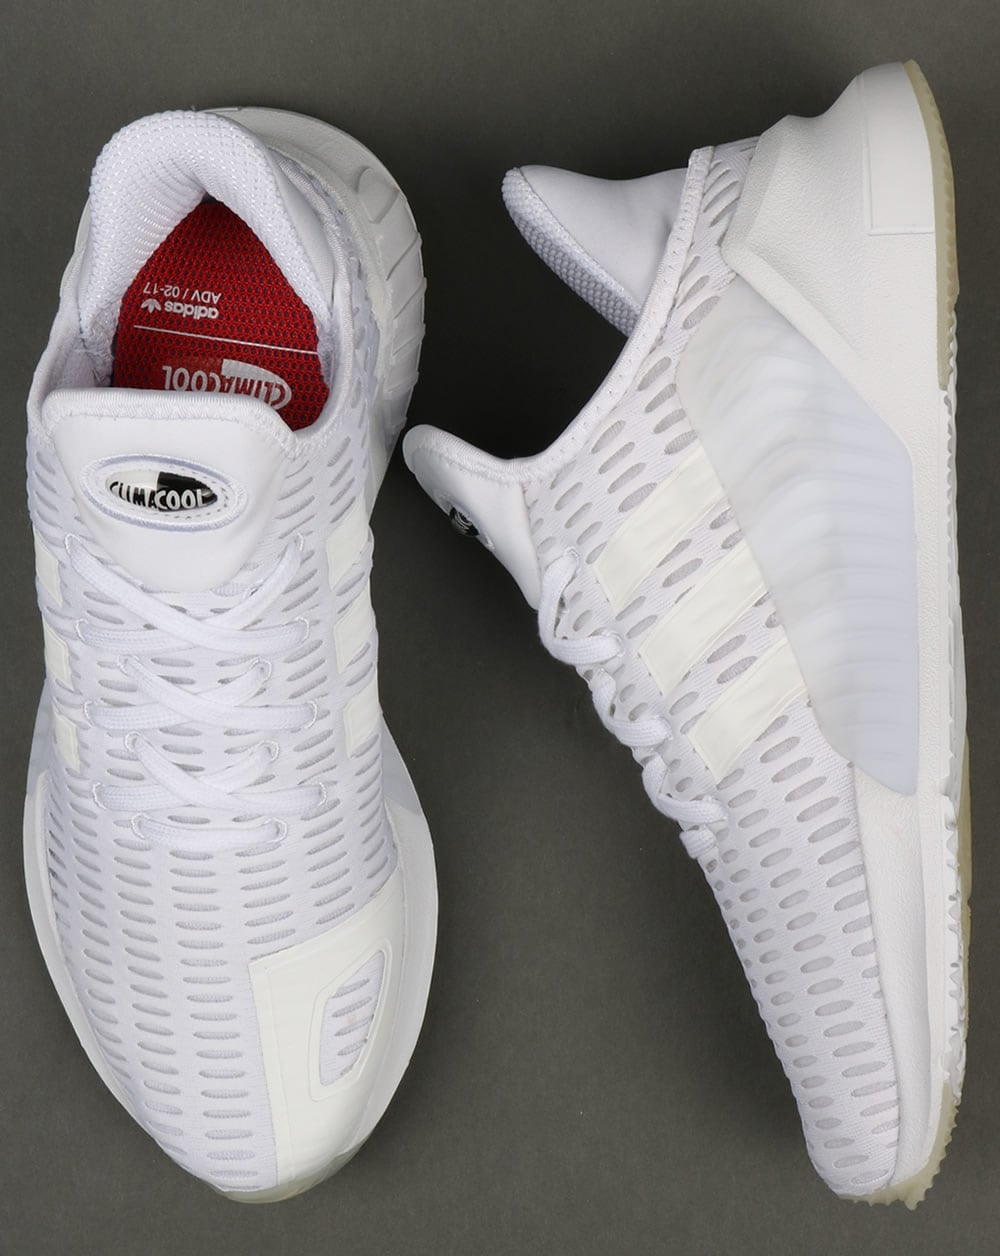 5d14900fd4c Adidas Climacool 02.17 Trainers Triple White